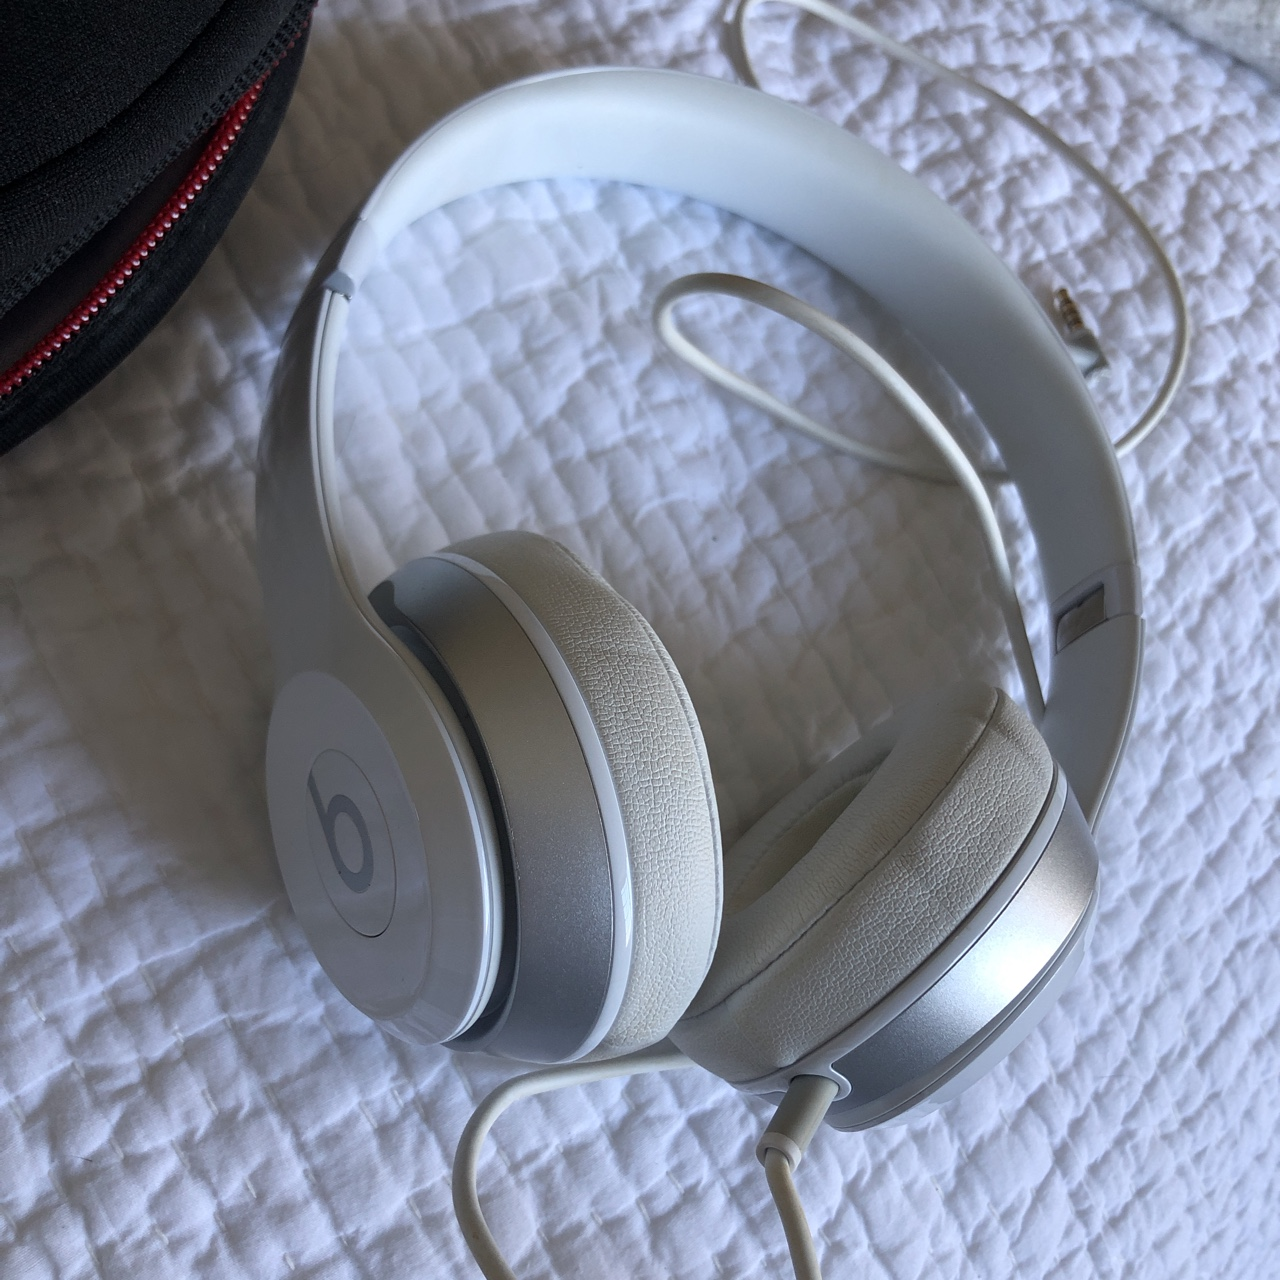 Beats Solo White Wired Headphones Very Good Depop